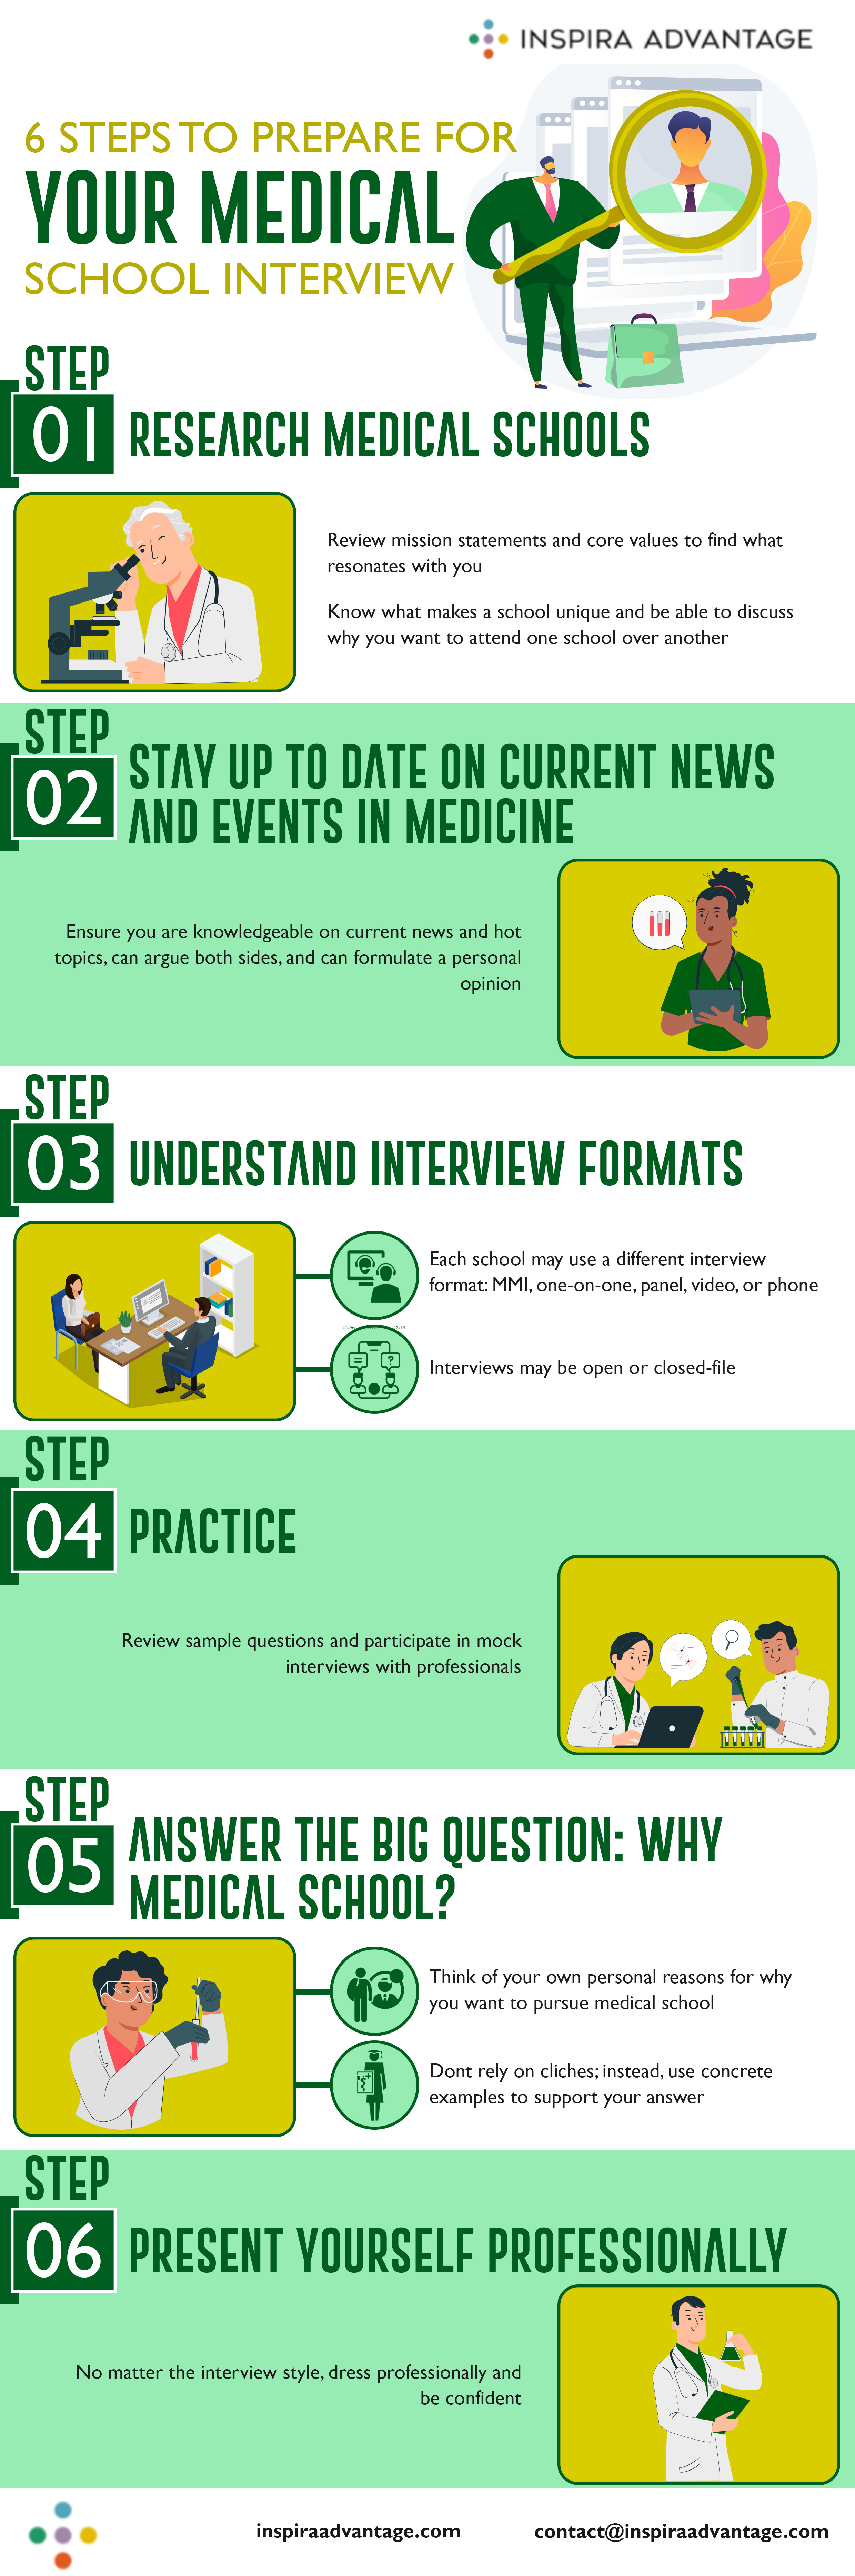 six steps on how to prepare for a medical school interview